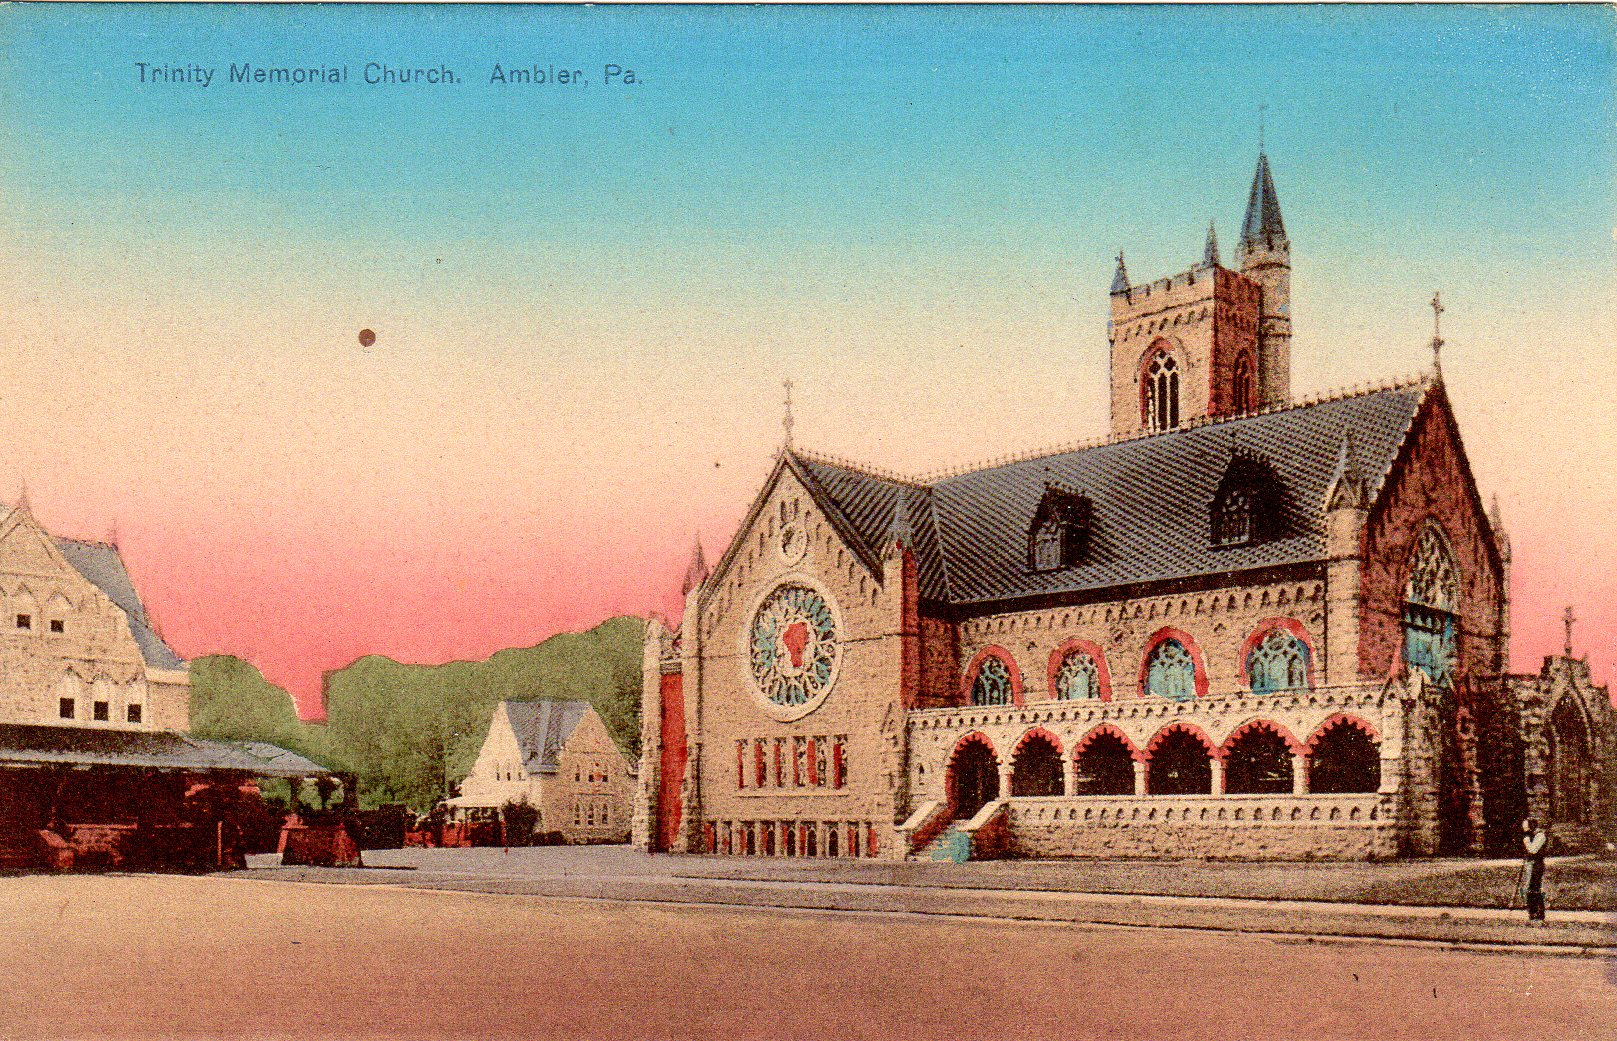 Post Card Collection (E Simon)_2682_23_Trinity Memorial Church, Ambler, Pa